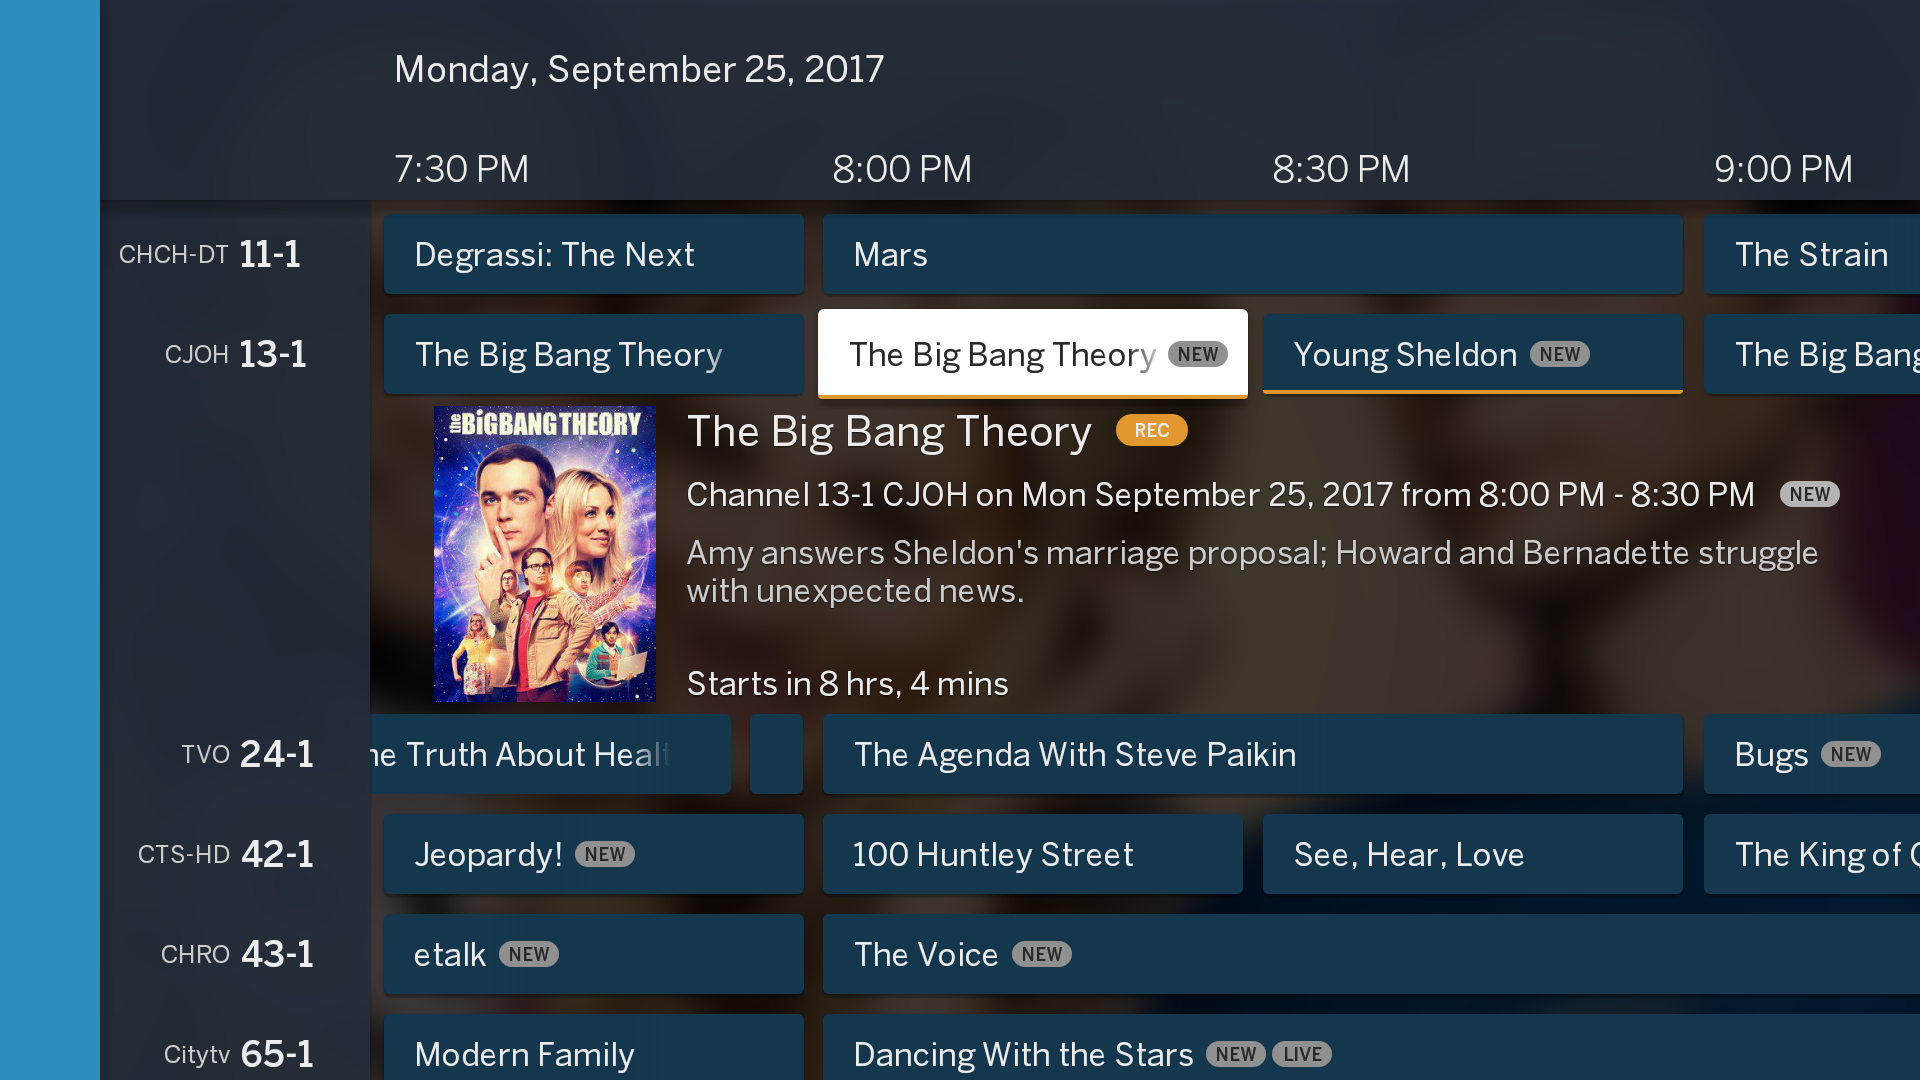 Introducing the new 'Preview' Tablo App for Amazon Fire TV